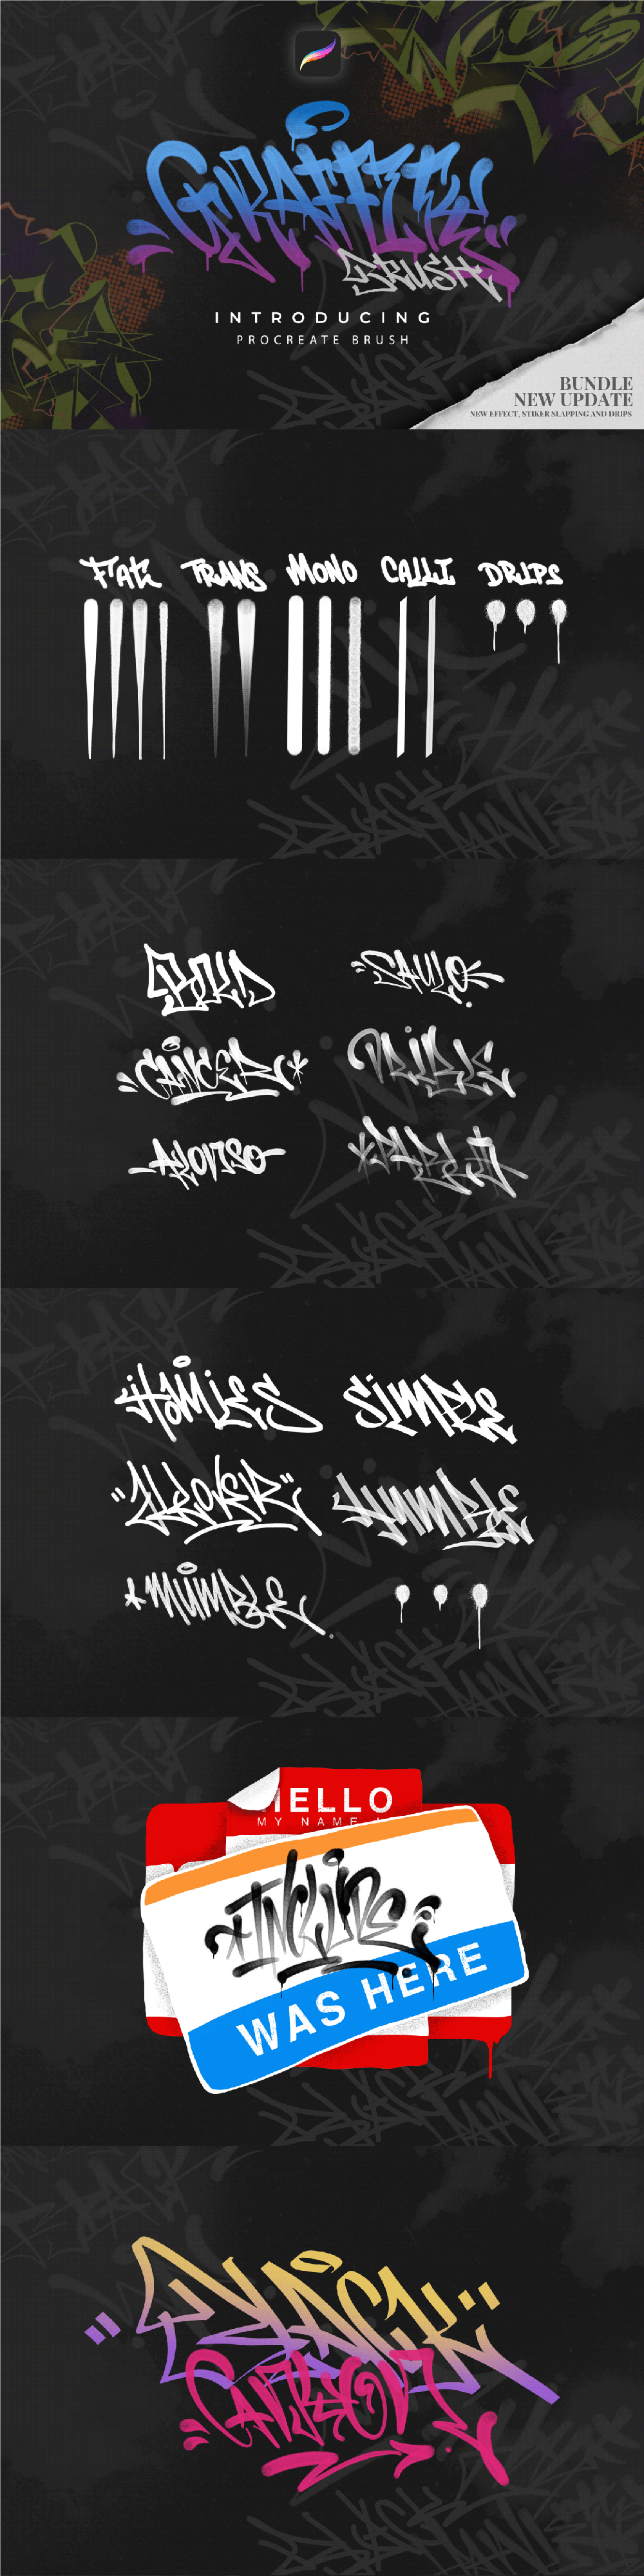 Free Download Graffiti Procreate Brushes Pack, Great quality and easy to use this brushes for your awesome design project. High resolution. 100% free!